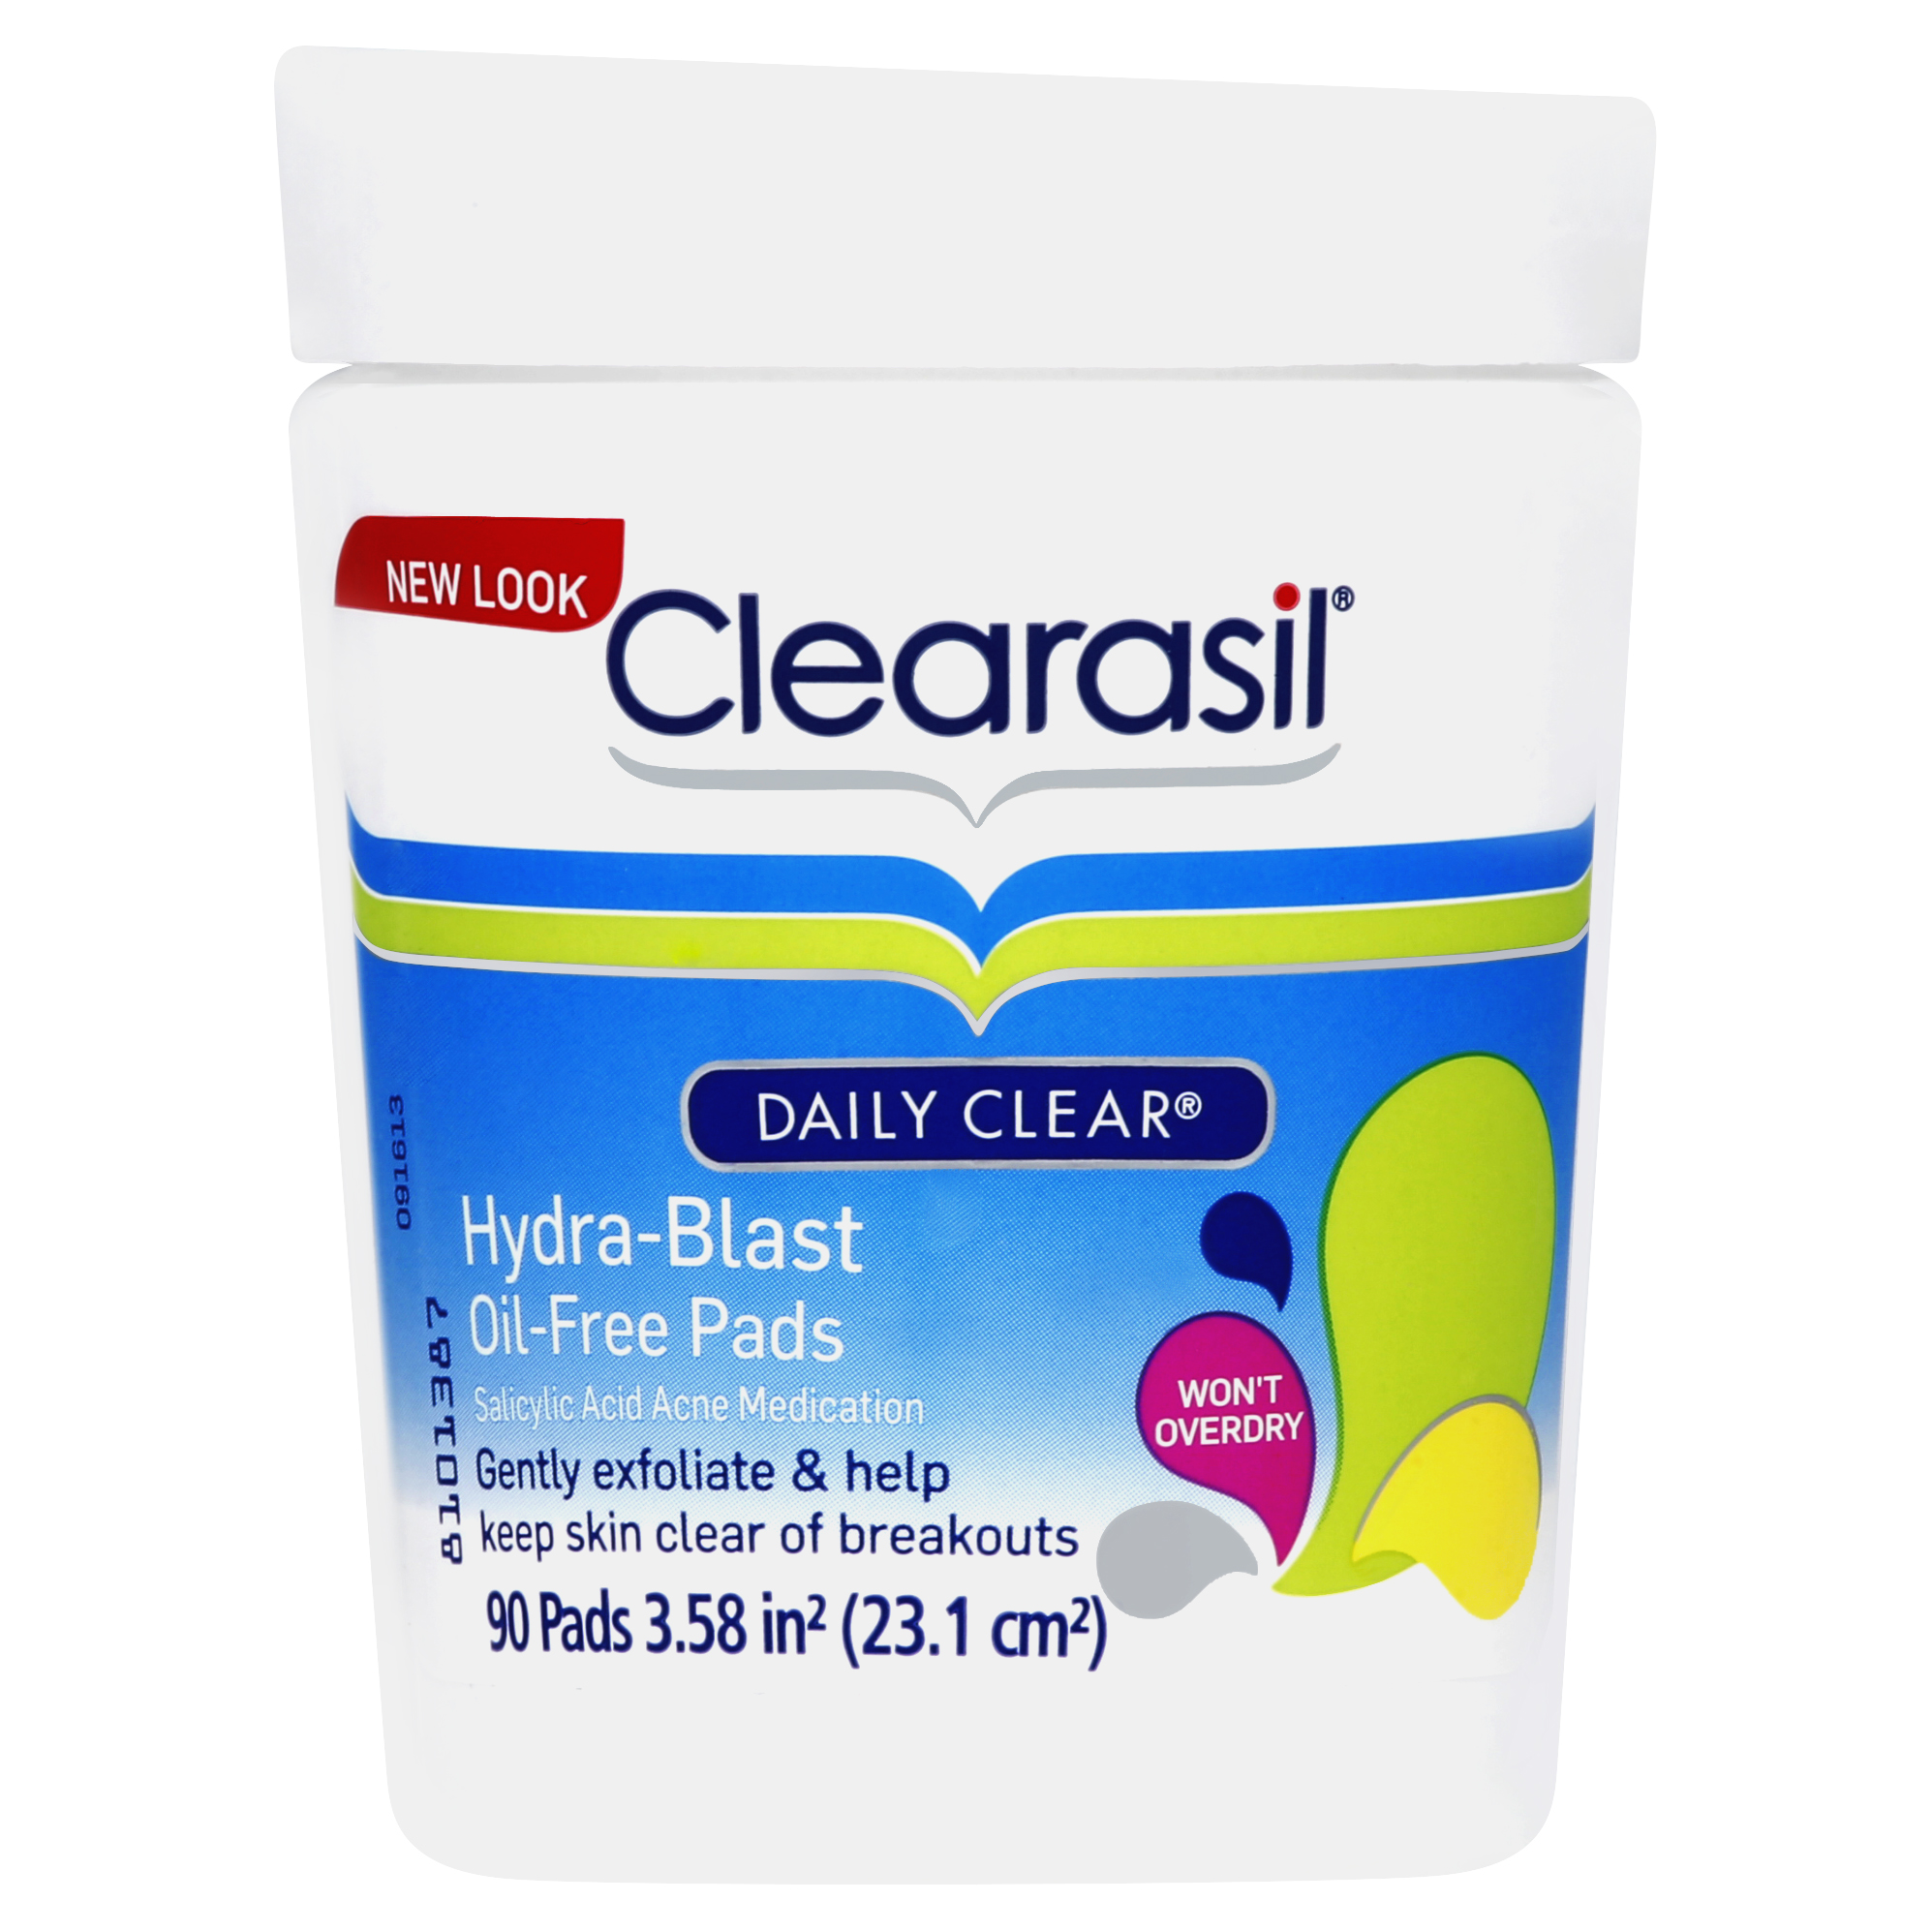 Clearasil Daily Clear Acne Face Pore Cleansing Pads, Hydra-Blast Oil-Free Facial Pads, 90 Count